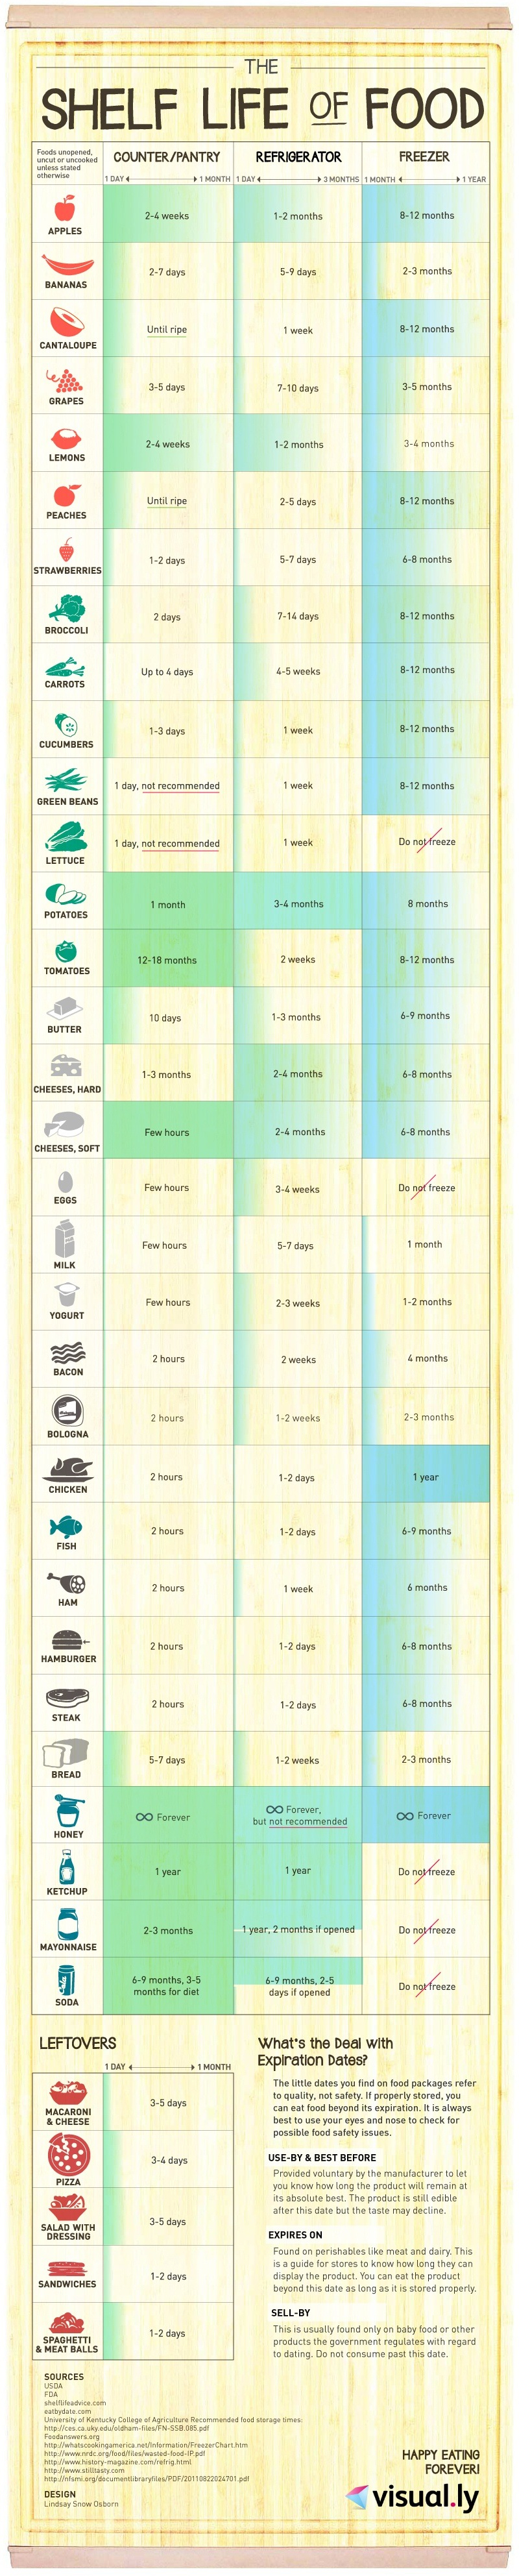 Good To Know Shelf Life Of Food In Your Pantry Accent Flavor Food Shelf Life Pantry Fruits Veggies Accentflavo Food Infographic Good To Know Food Hacks